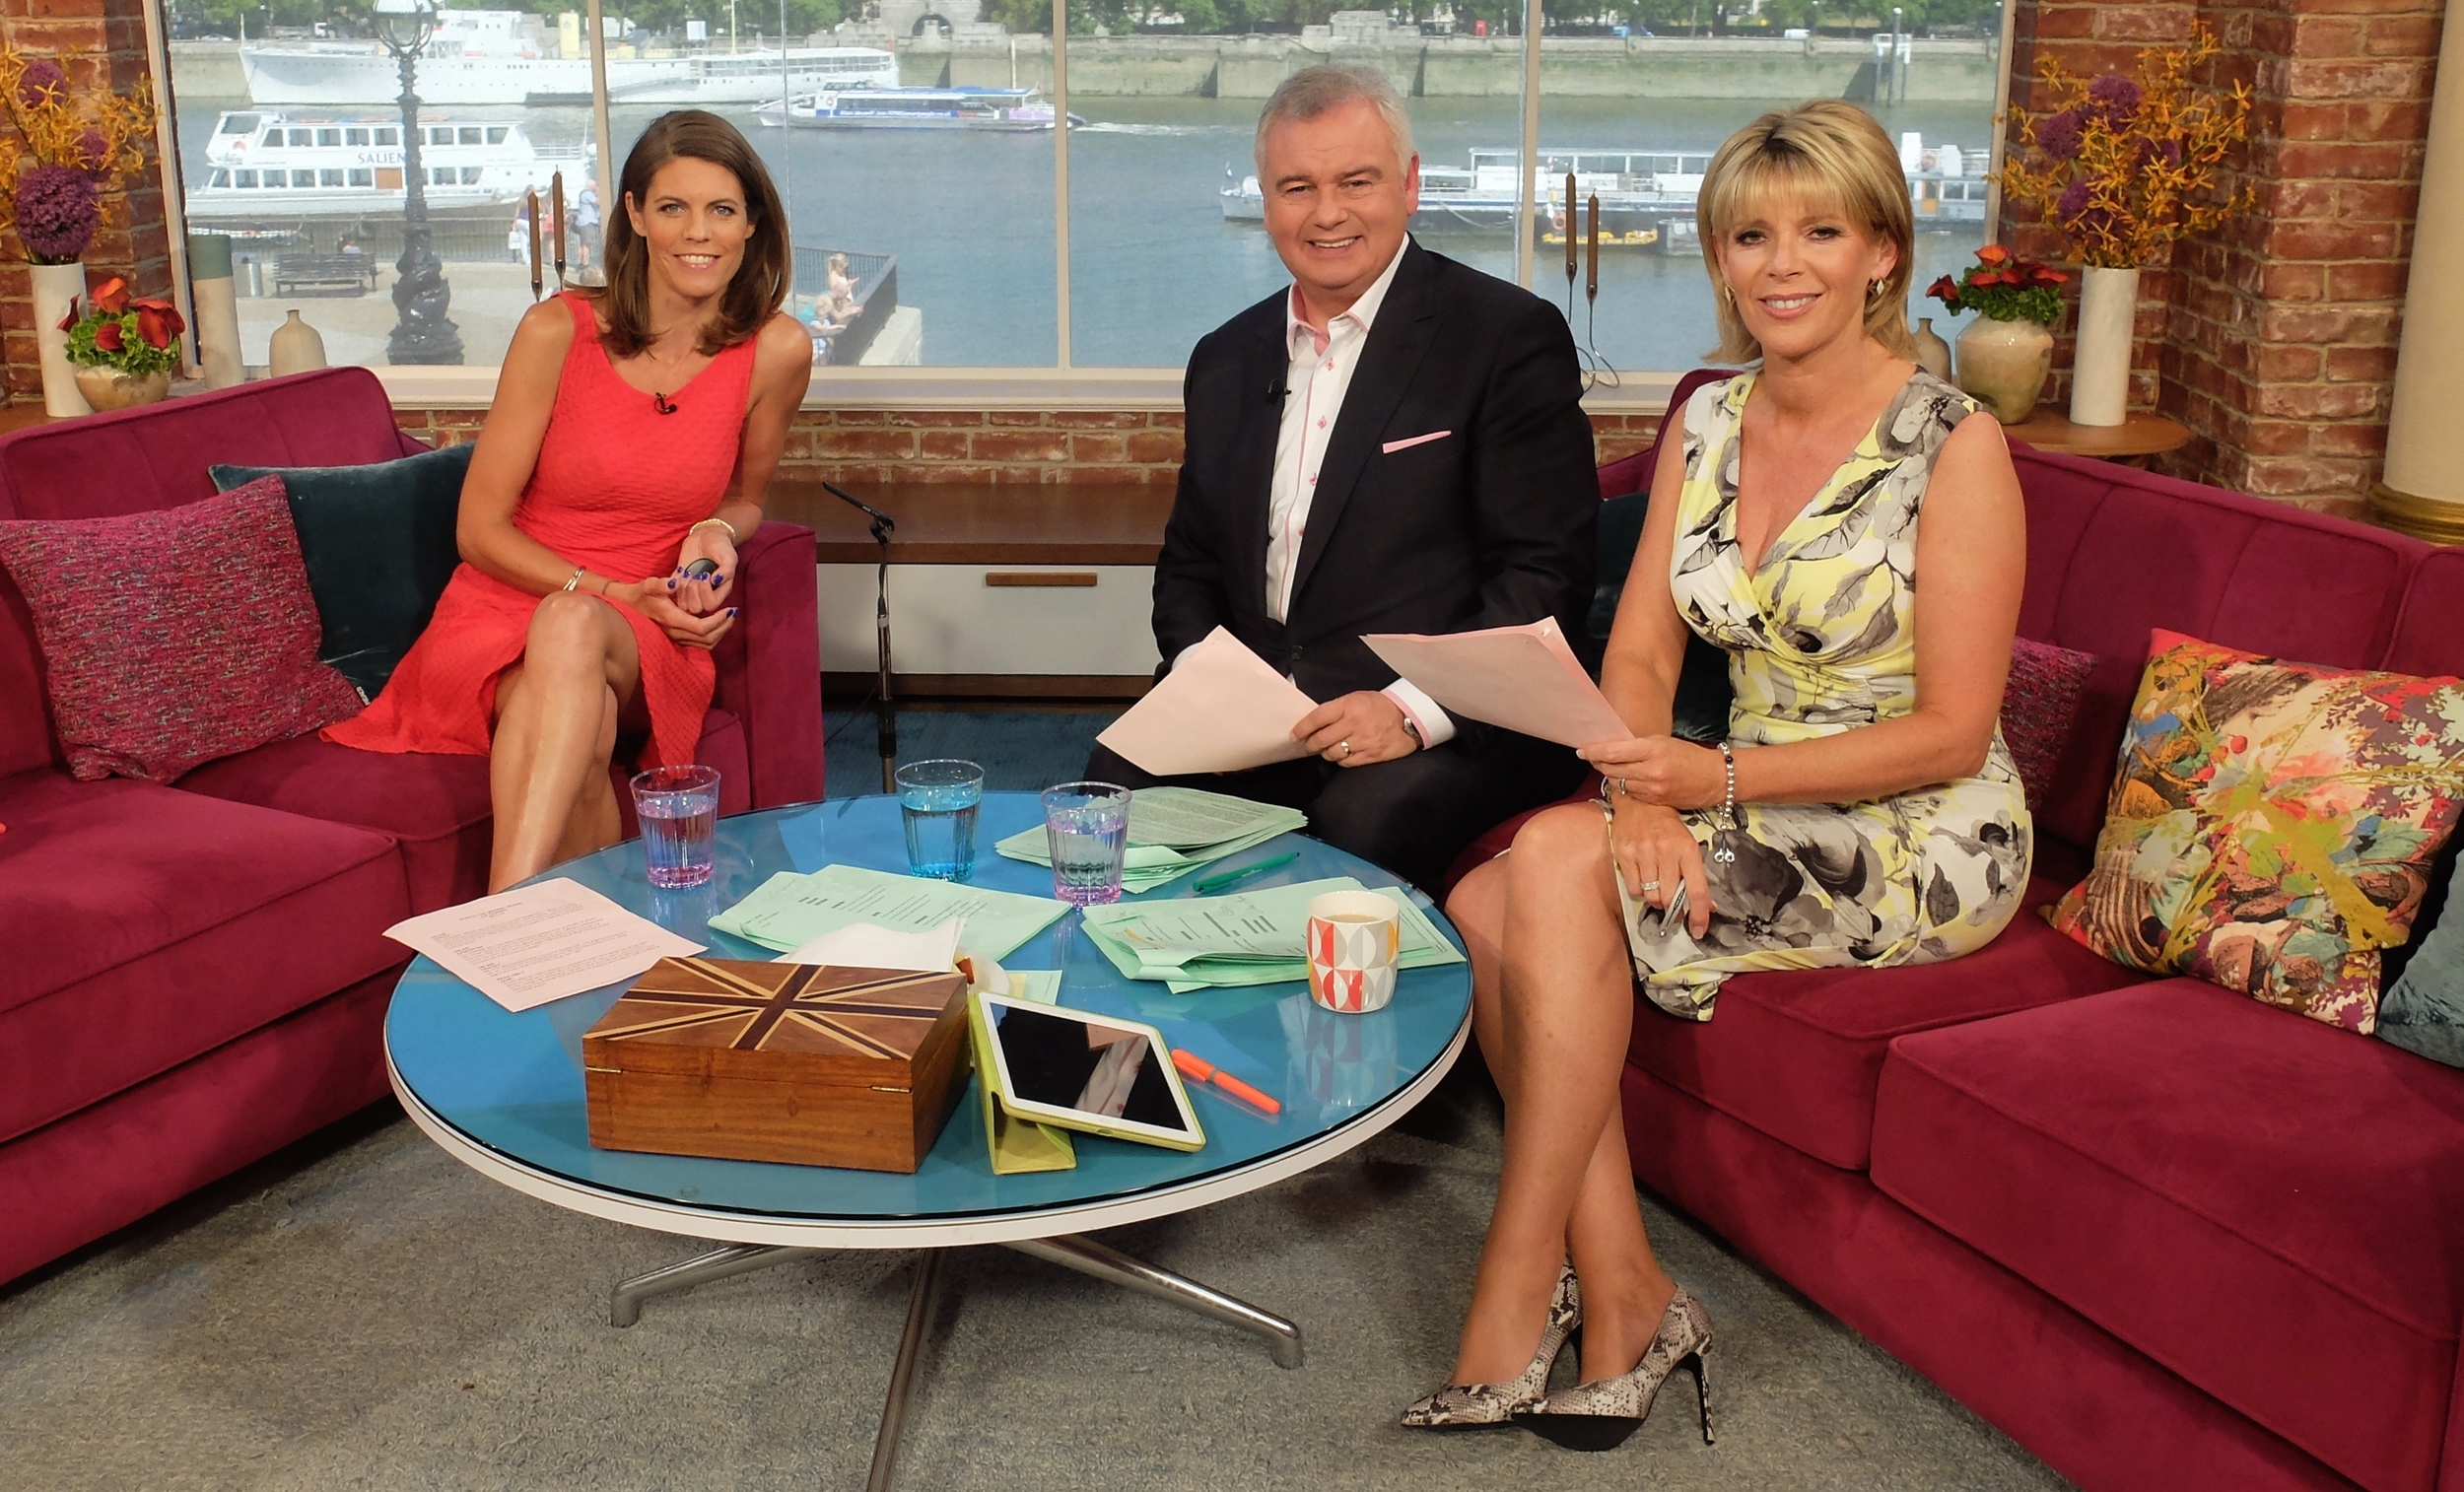 ON ITV'S 'THIS MORNING'